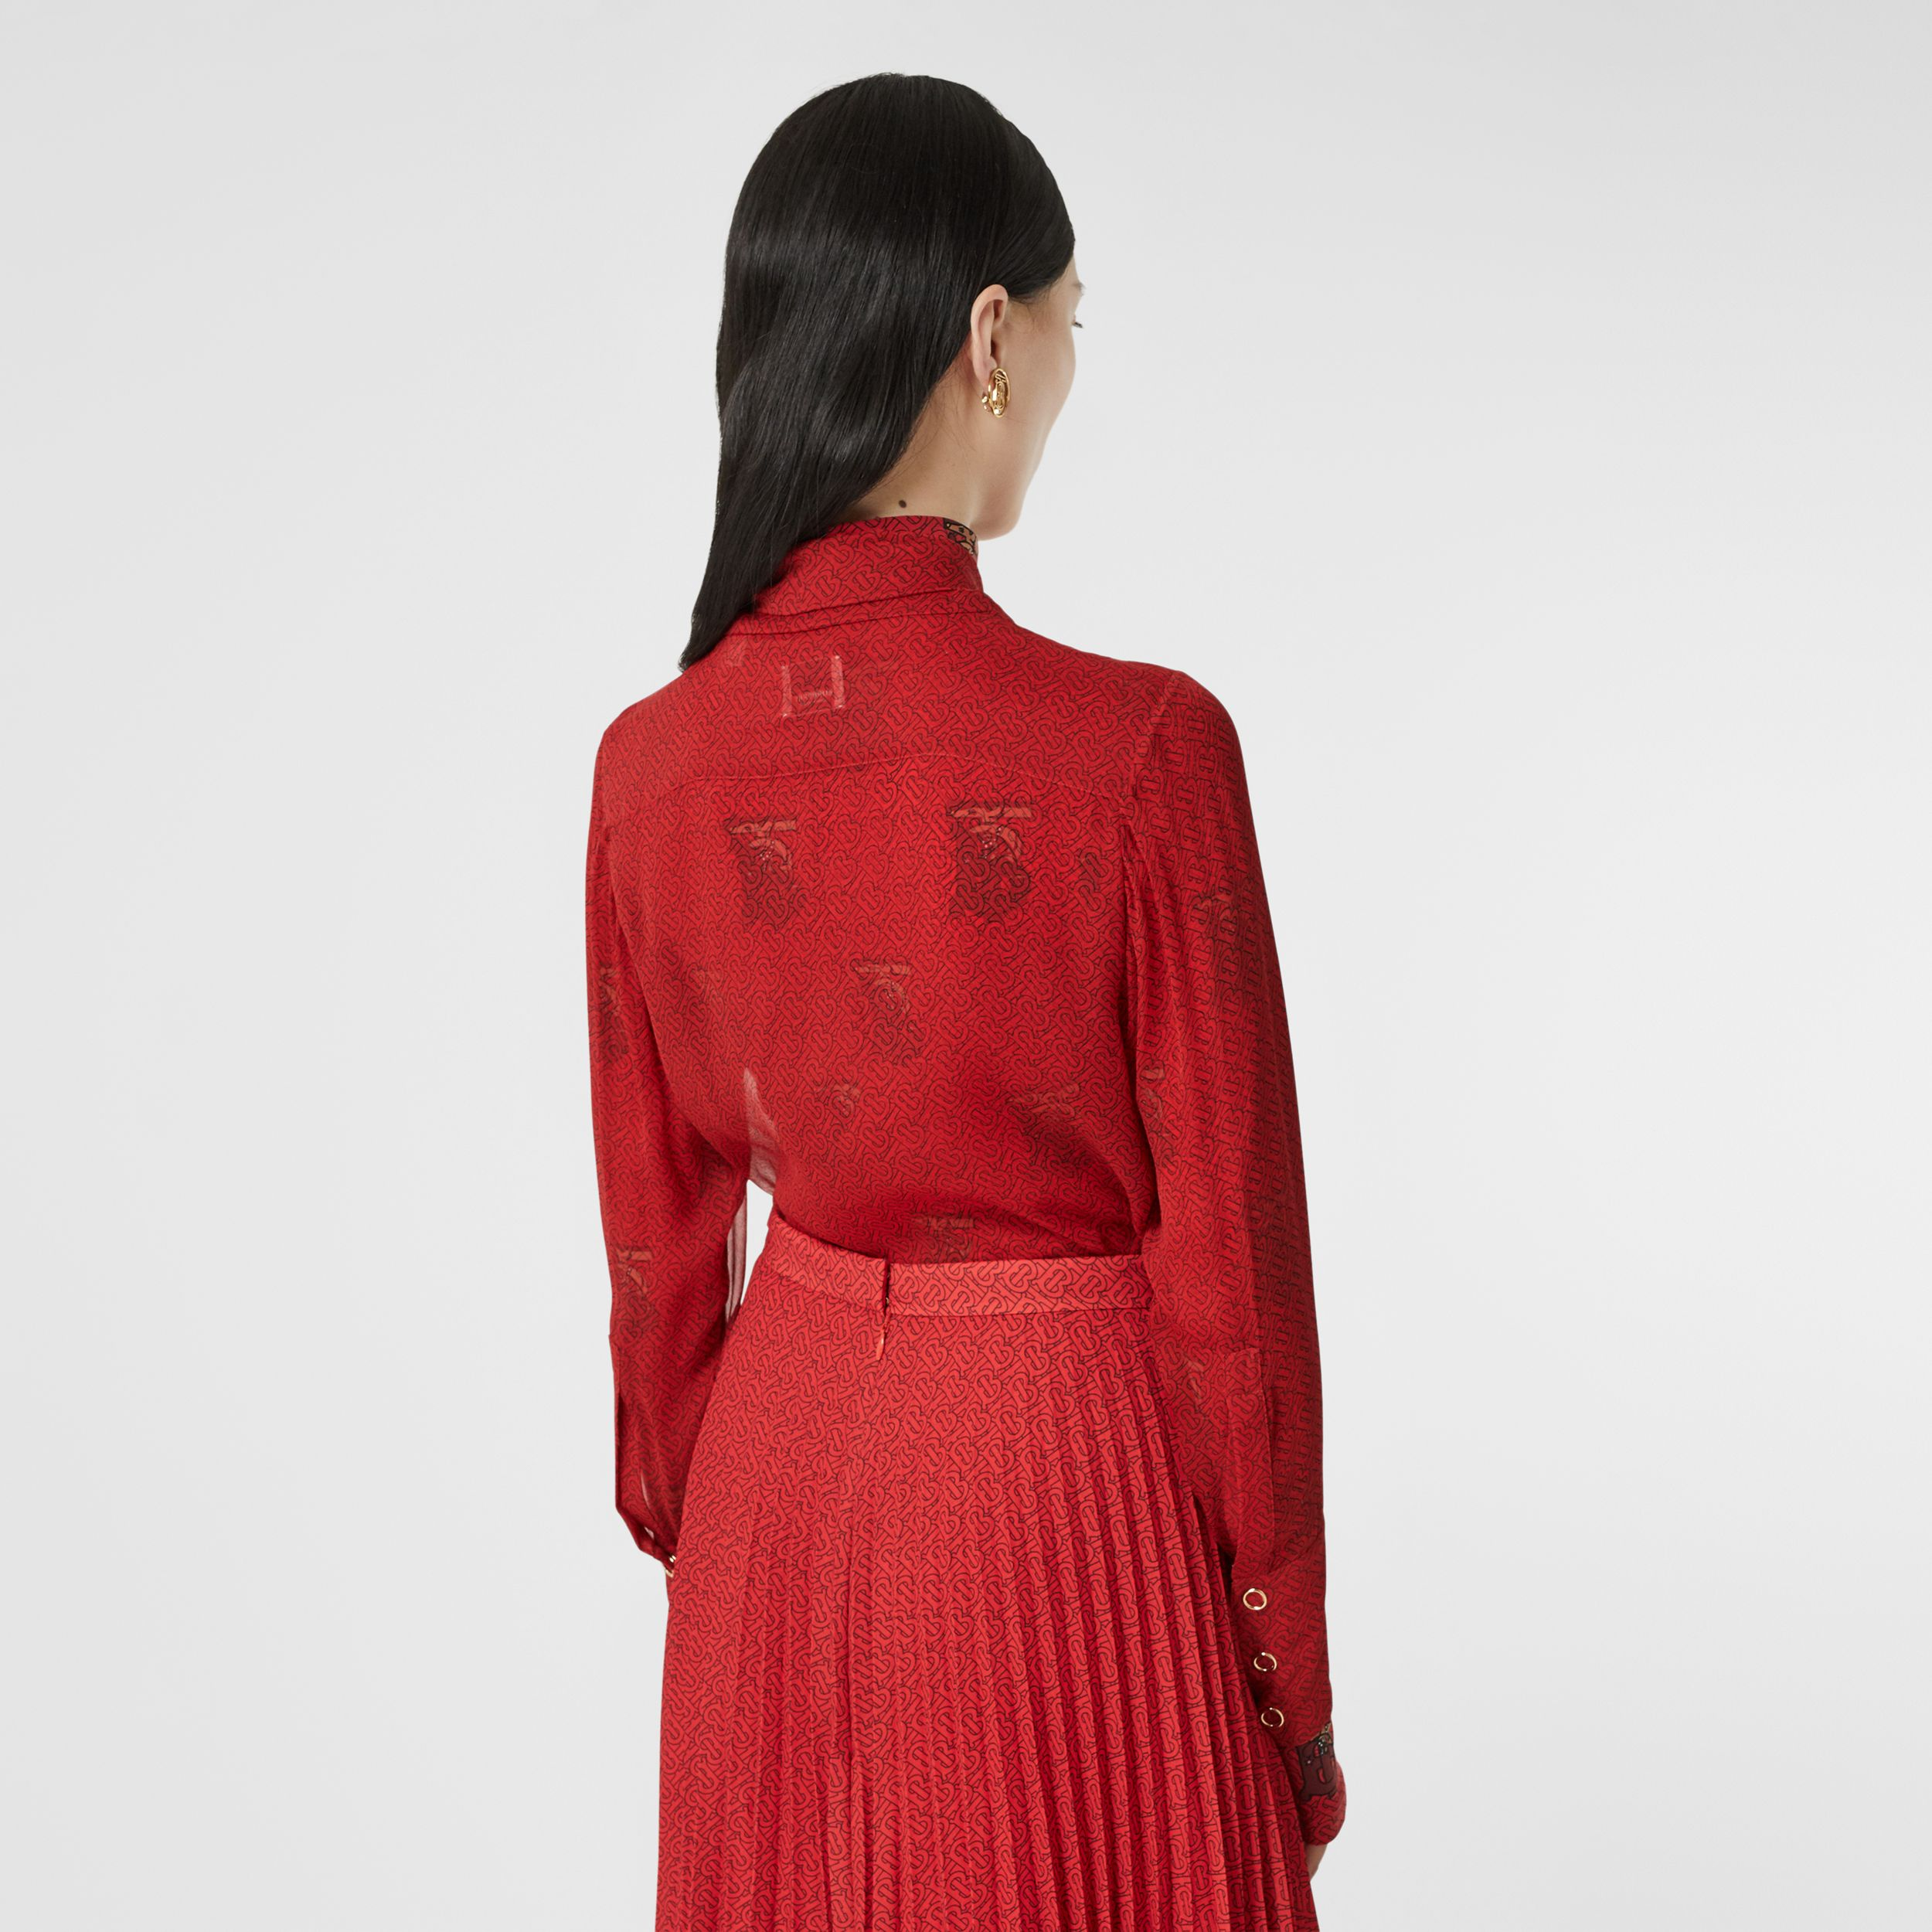 Monogram Print Silk Chiffon Pussy-bow Blouse in Bright Red - Women | Burberry - 3